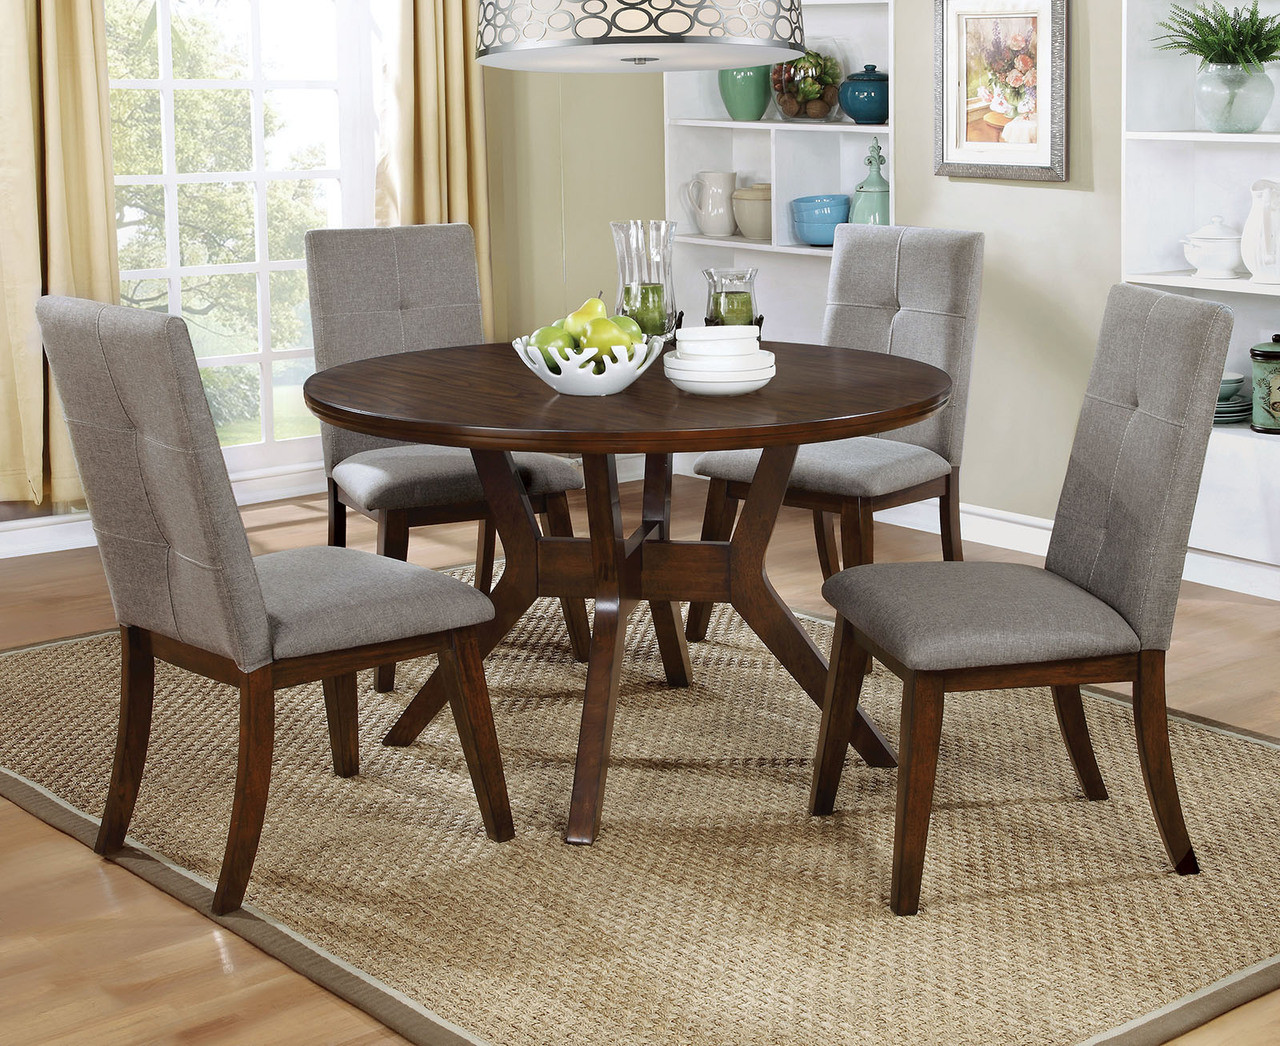 Hover Round Chairs Furniture Of America Walnut Round Dining Table Set